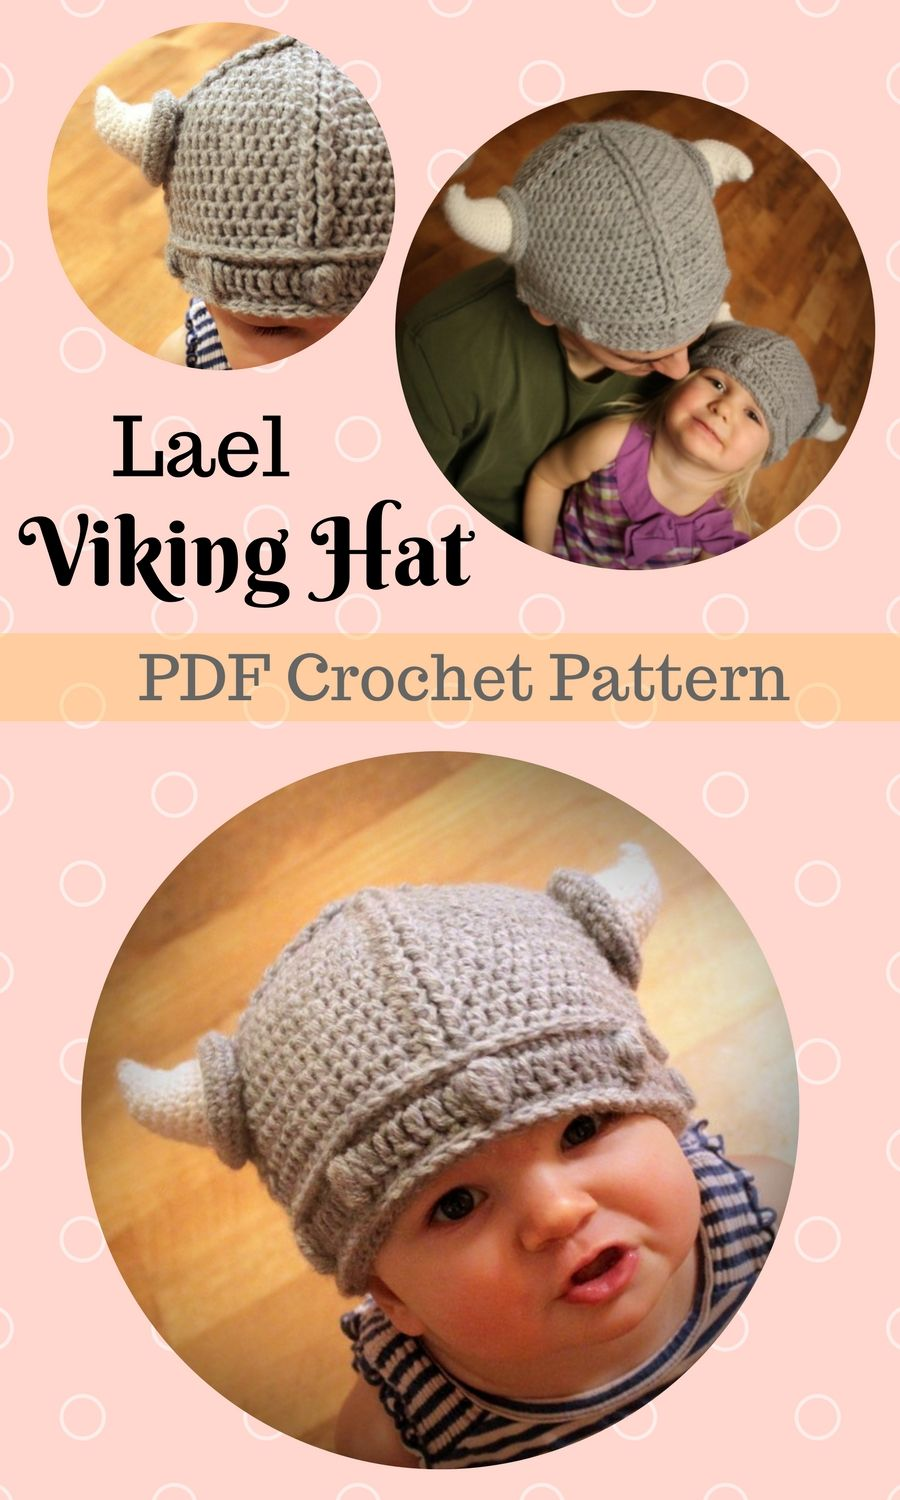 Lael Viking Hat Crochet Pattern. Cute and easy instant PDFdownload ...